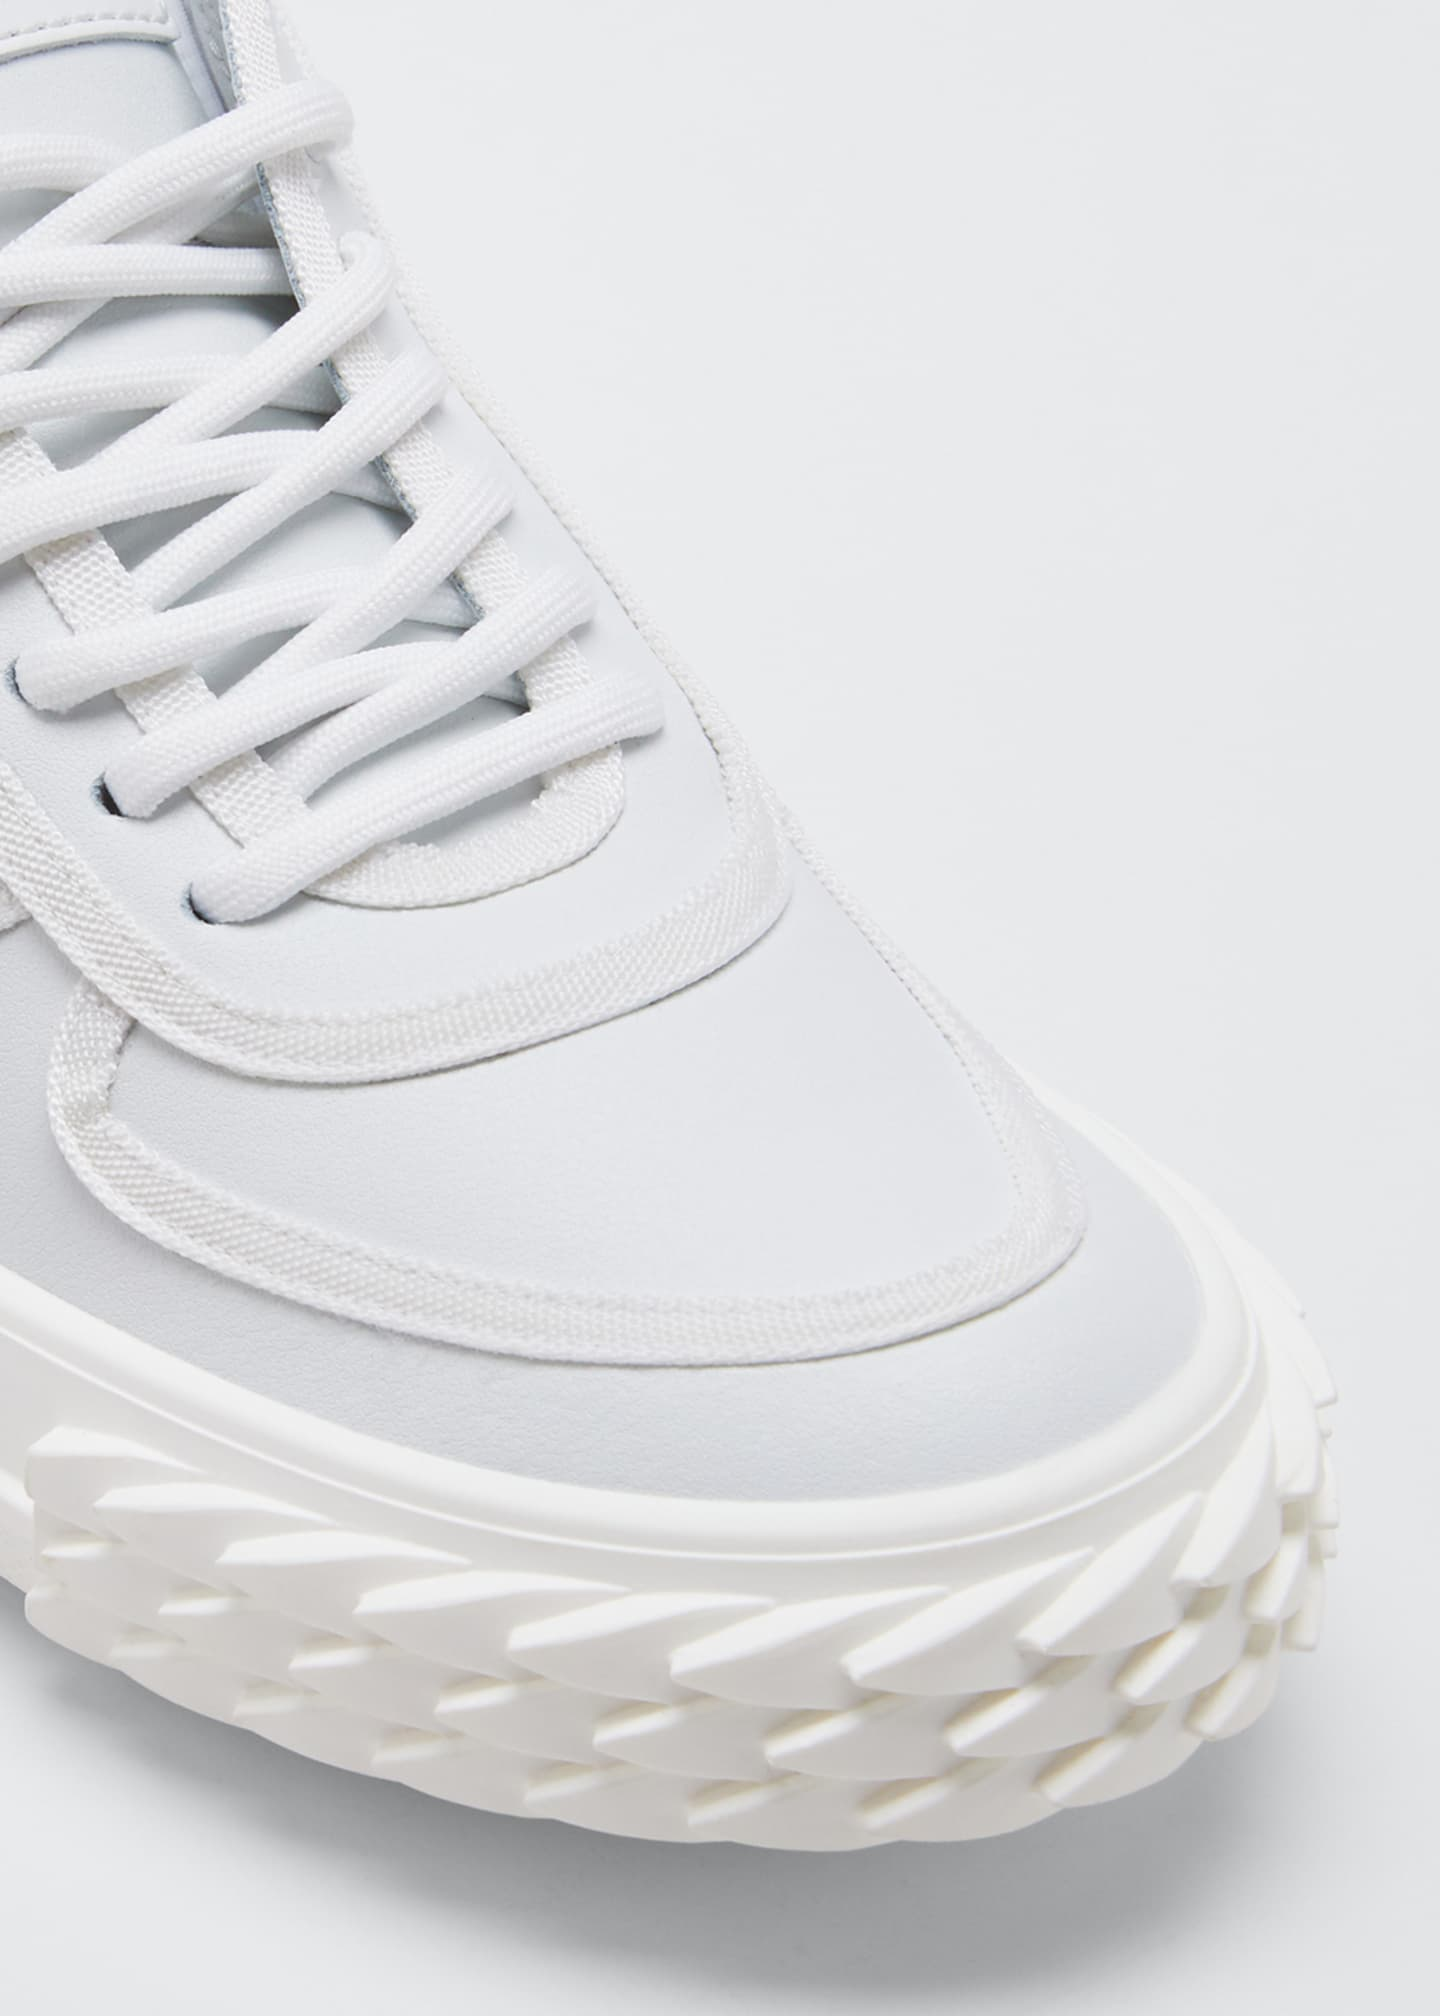 Image 3 of 3: Gomma Blabber Mono Sneakers